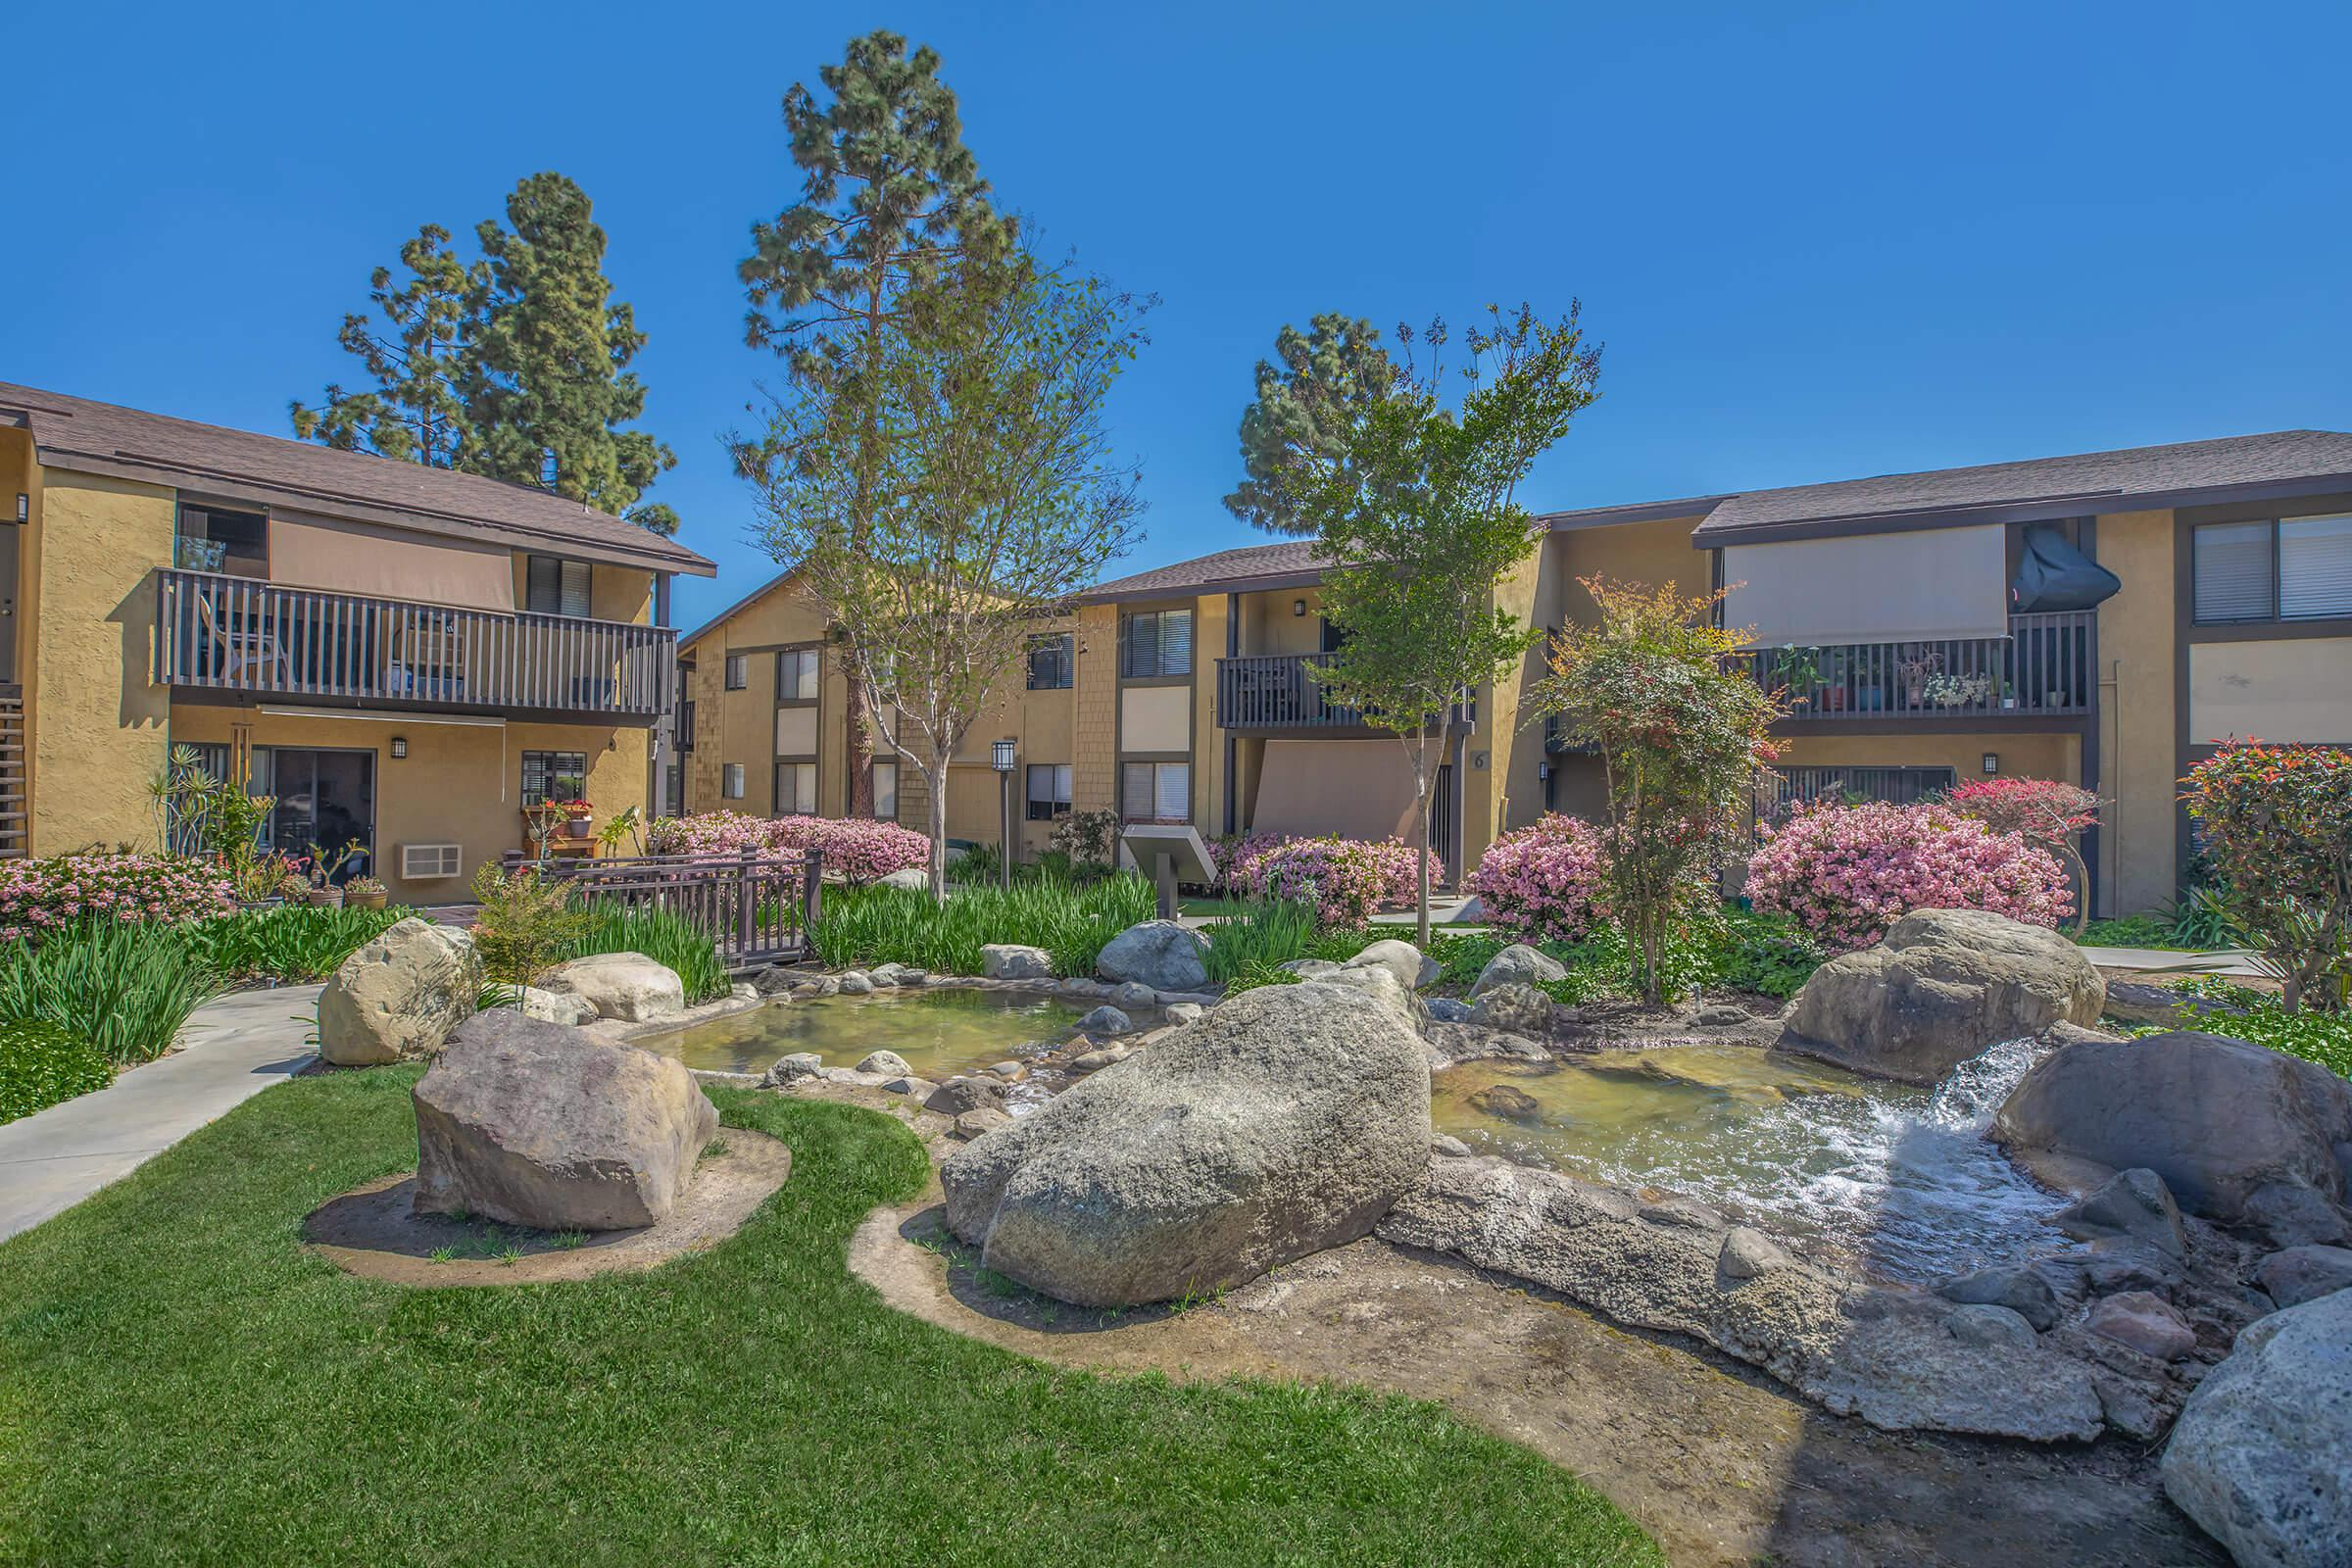 WELCOME HOME TO PINECREEK VILLAGE APARTMENTS IN COSTA MESA, CA